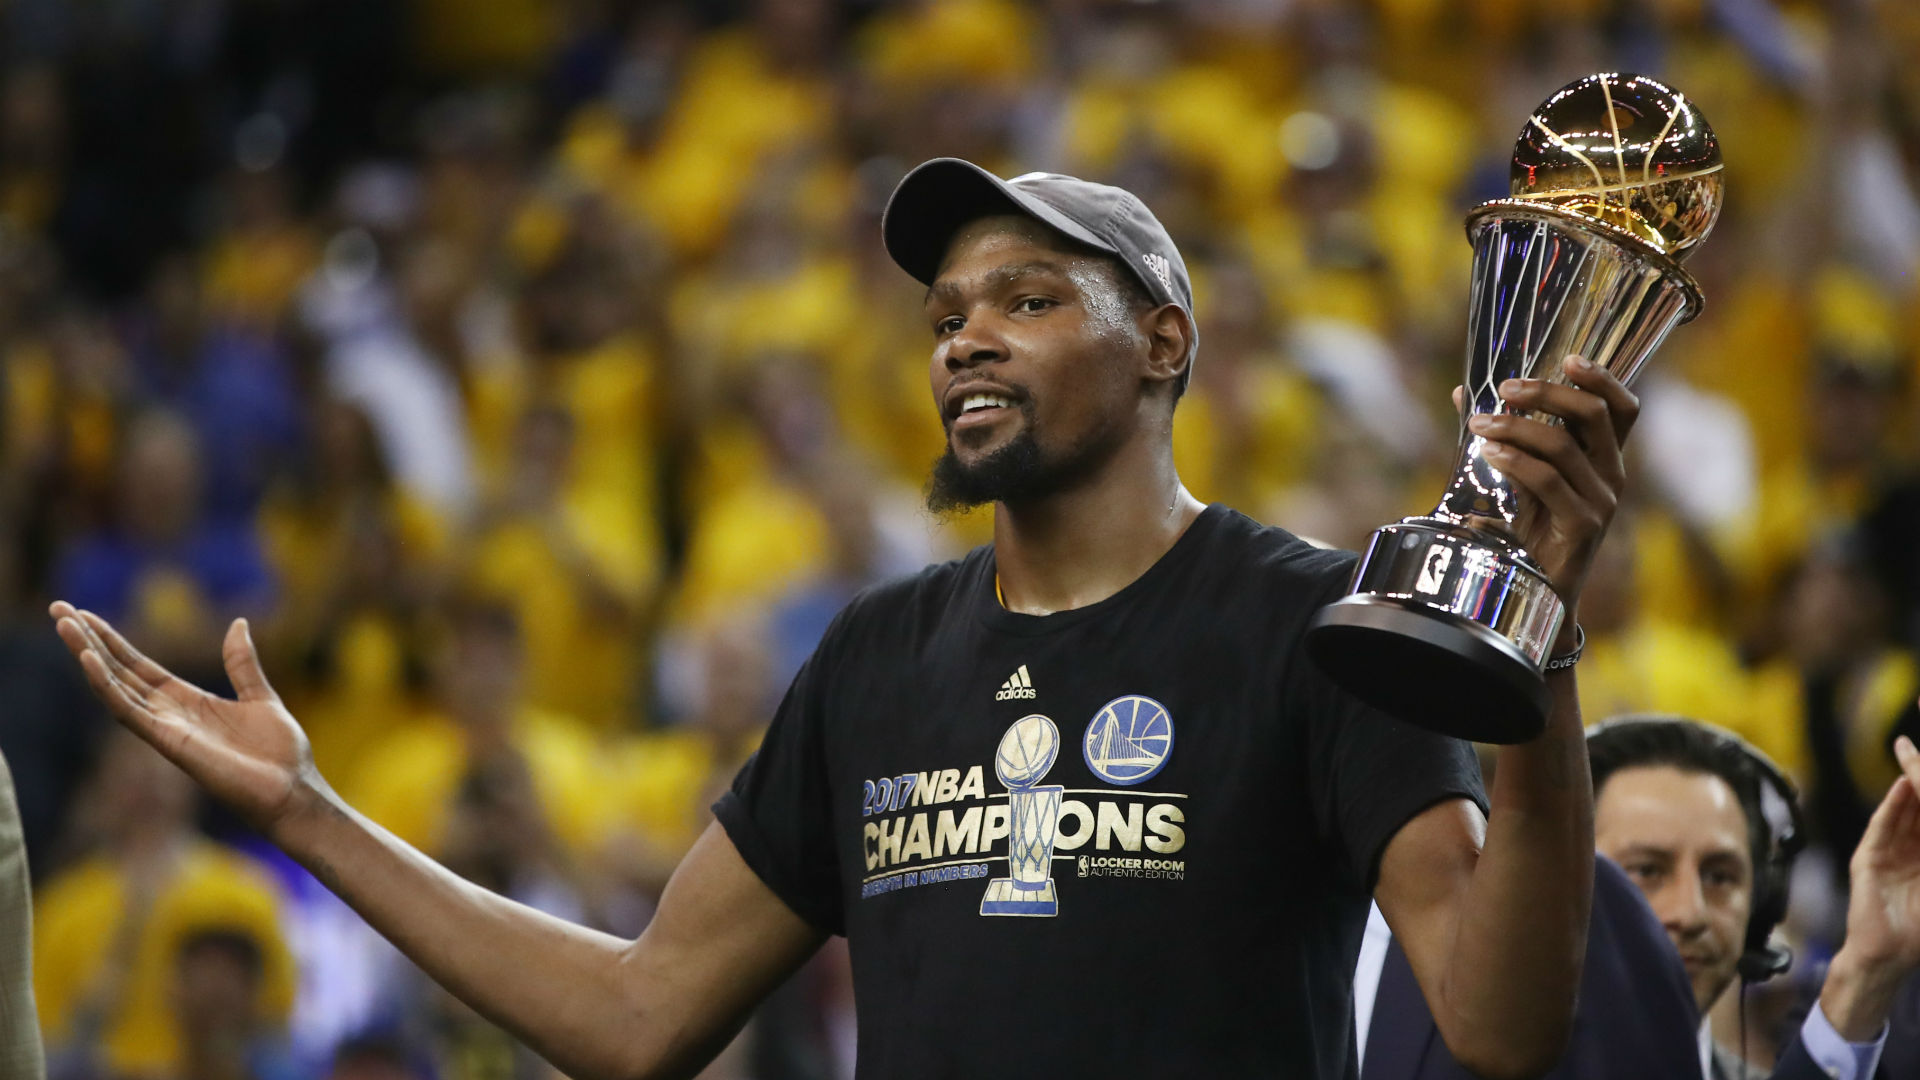 Kevin Durant's non-foul on LeBron James looms large in Warriors' run